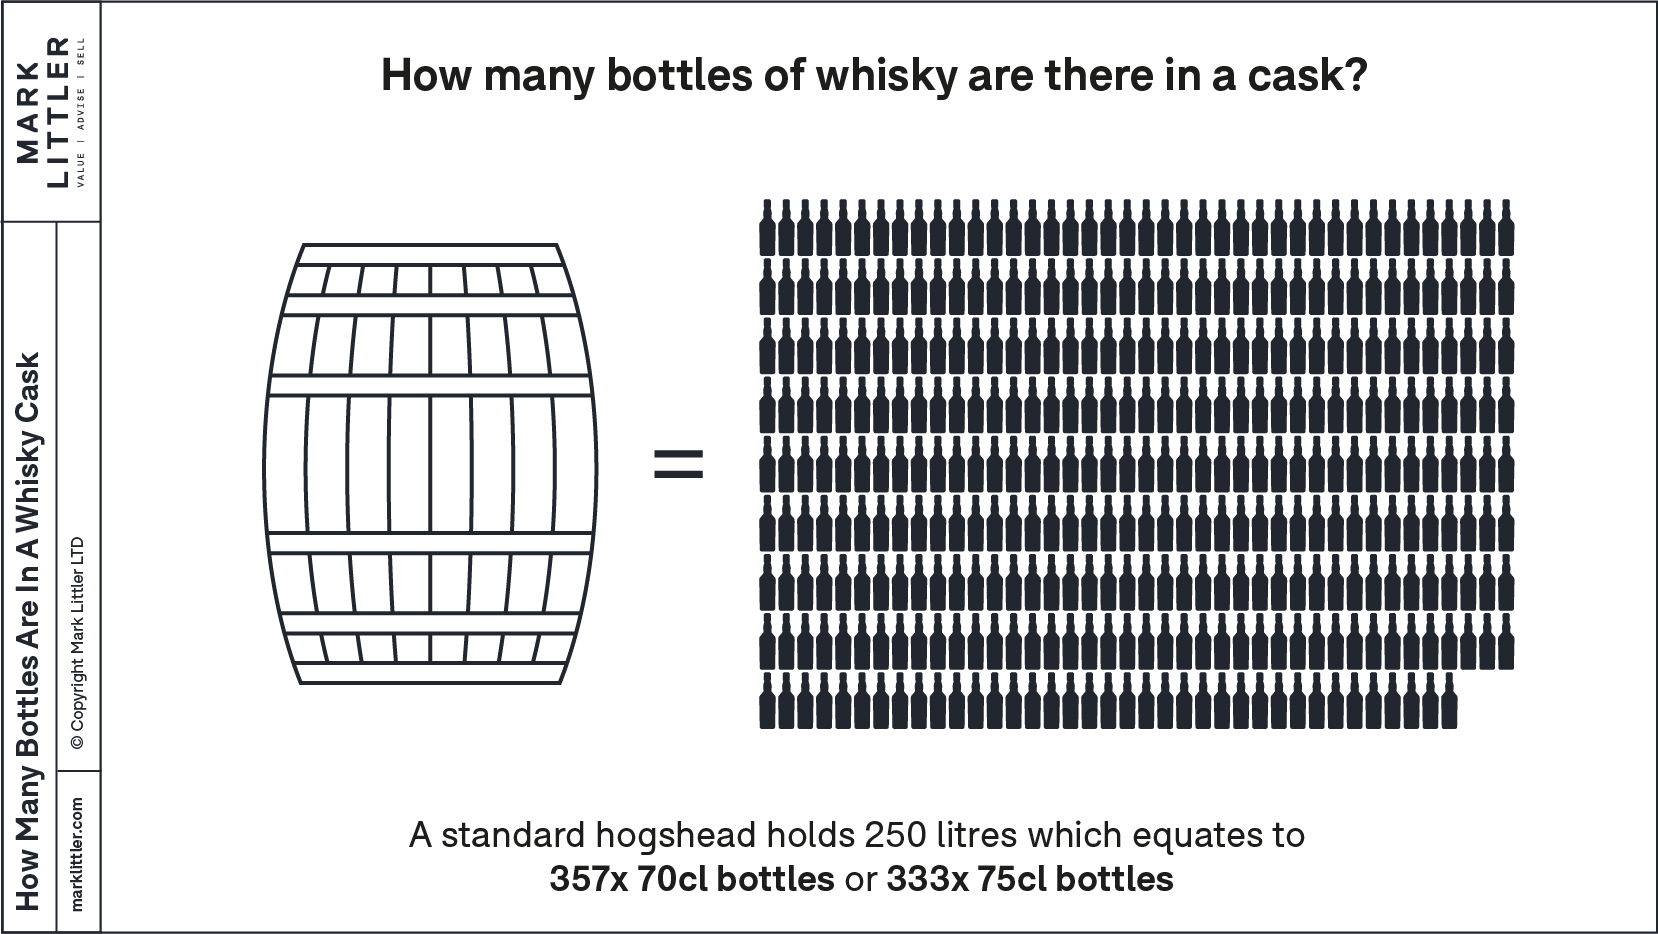 How many bottles of whisky are in a cask?